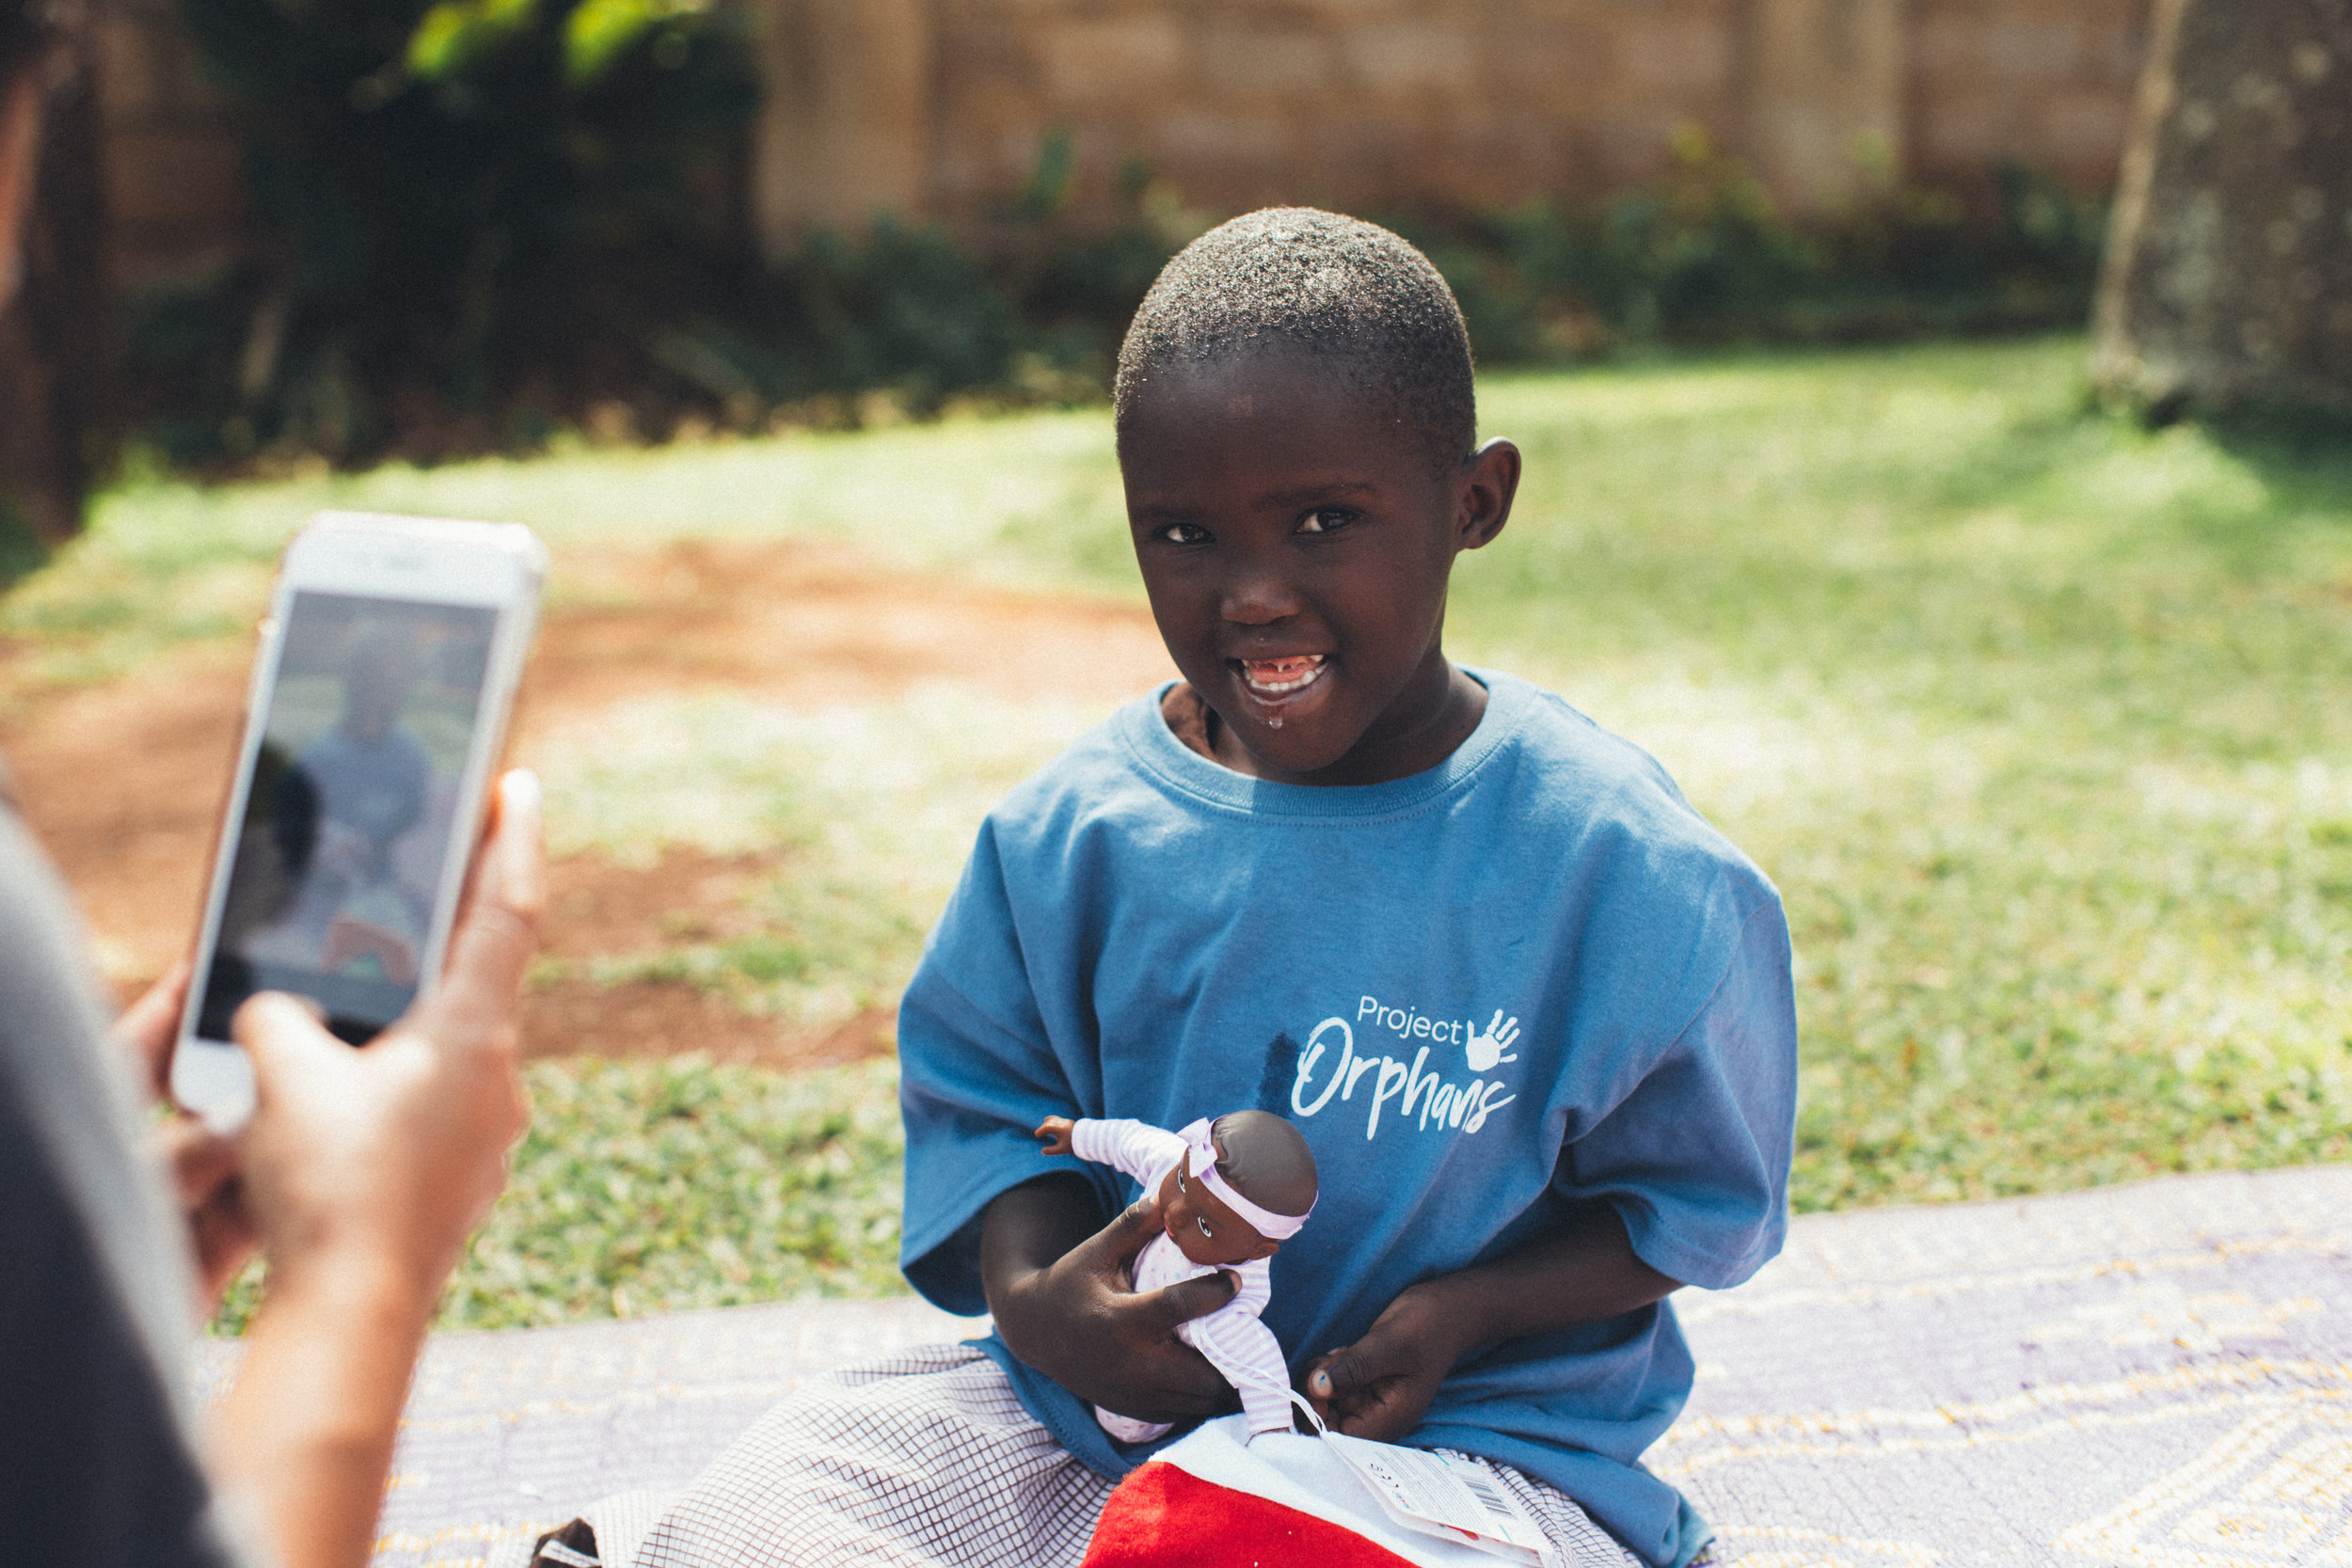 the girl Who Inspired US - Meet Blessing. She was Project Orphan's first child with special needs enrolled into our program. After seeing the impact simple therapies, unconditional love and a healthy diet had on her life our team decided to take the next step and open a daycare for children with special needs. That is how Blessing's Cove came to be!